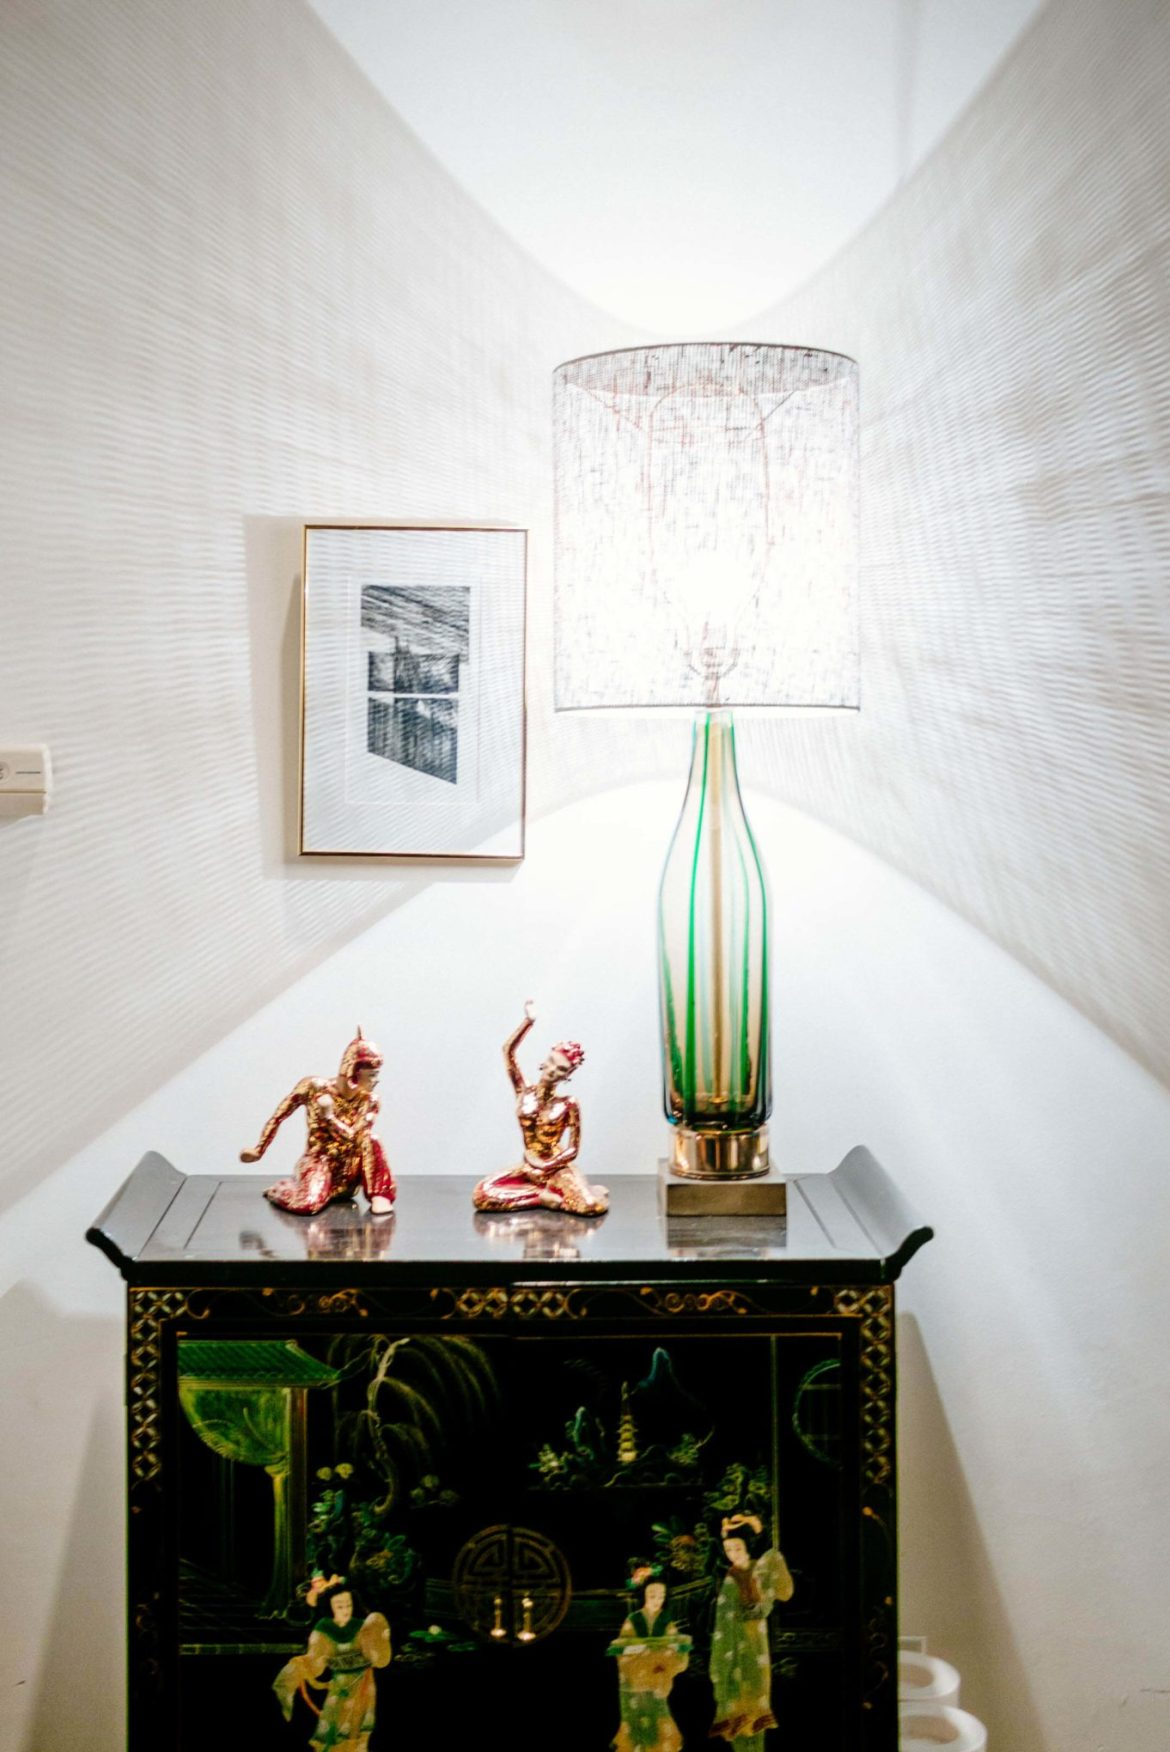 The Taste Edit takes you behind the Instagram photo sensation That Pink Door in Palm Springs. Explore the interior decor including bedrooms in this mid-century Palm Springs house with glass lamps